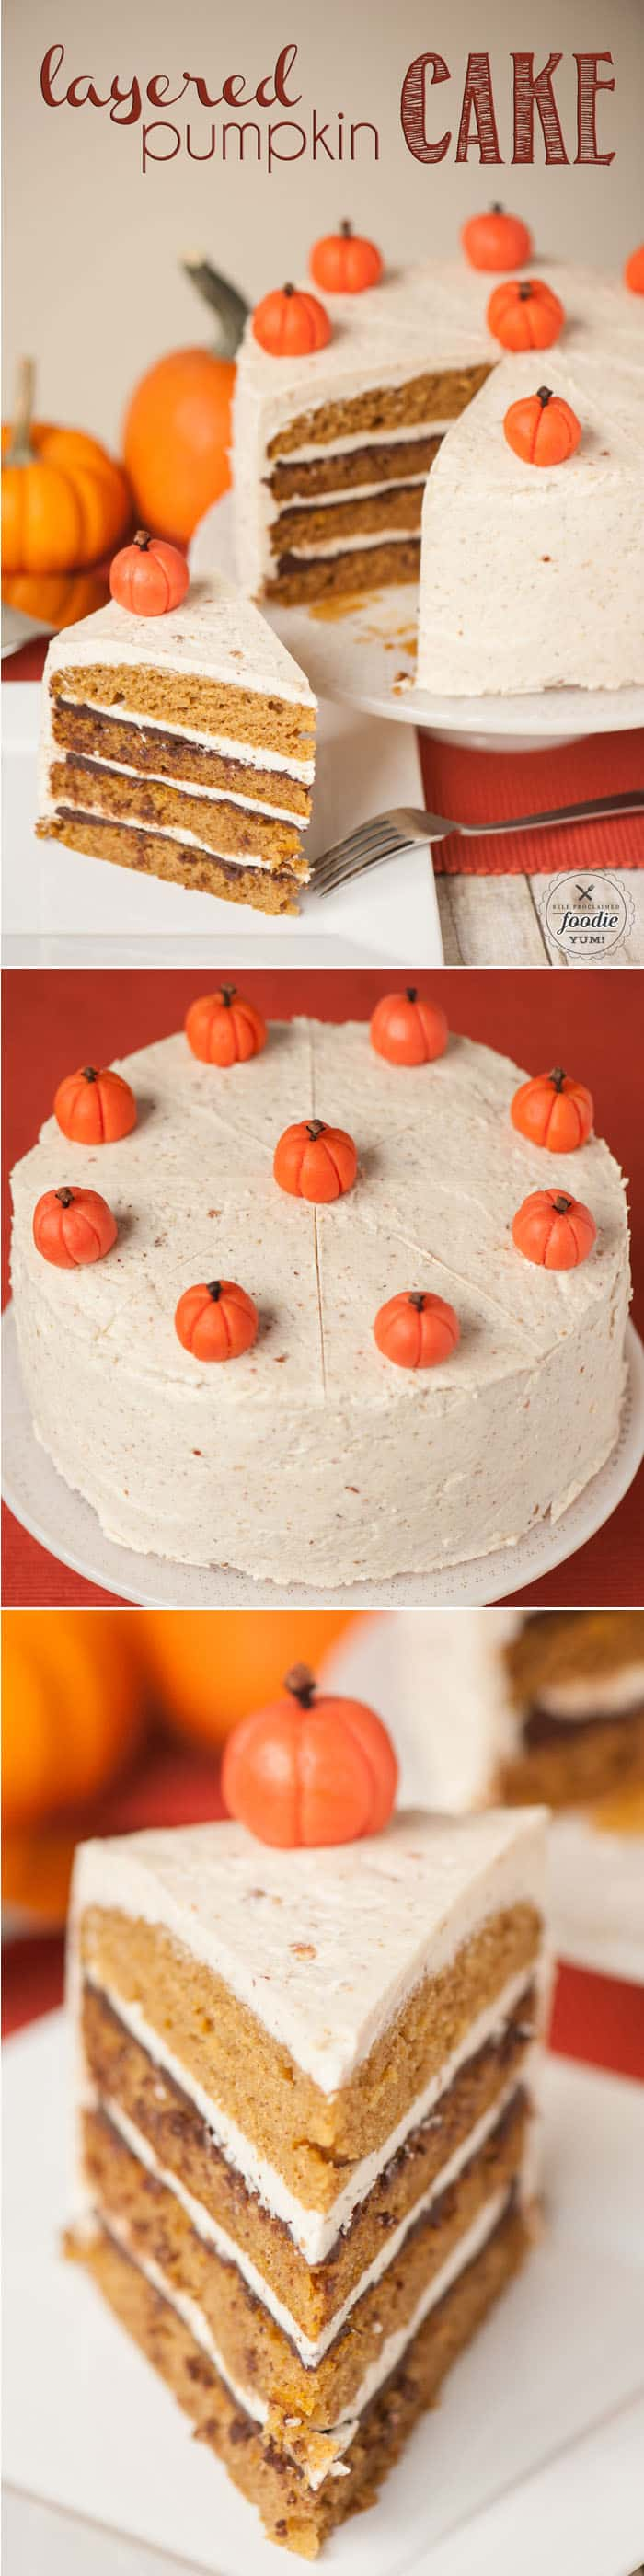 Layered Pumpkin Cake | Self Proclaimed Foodie